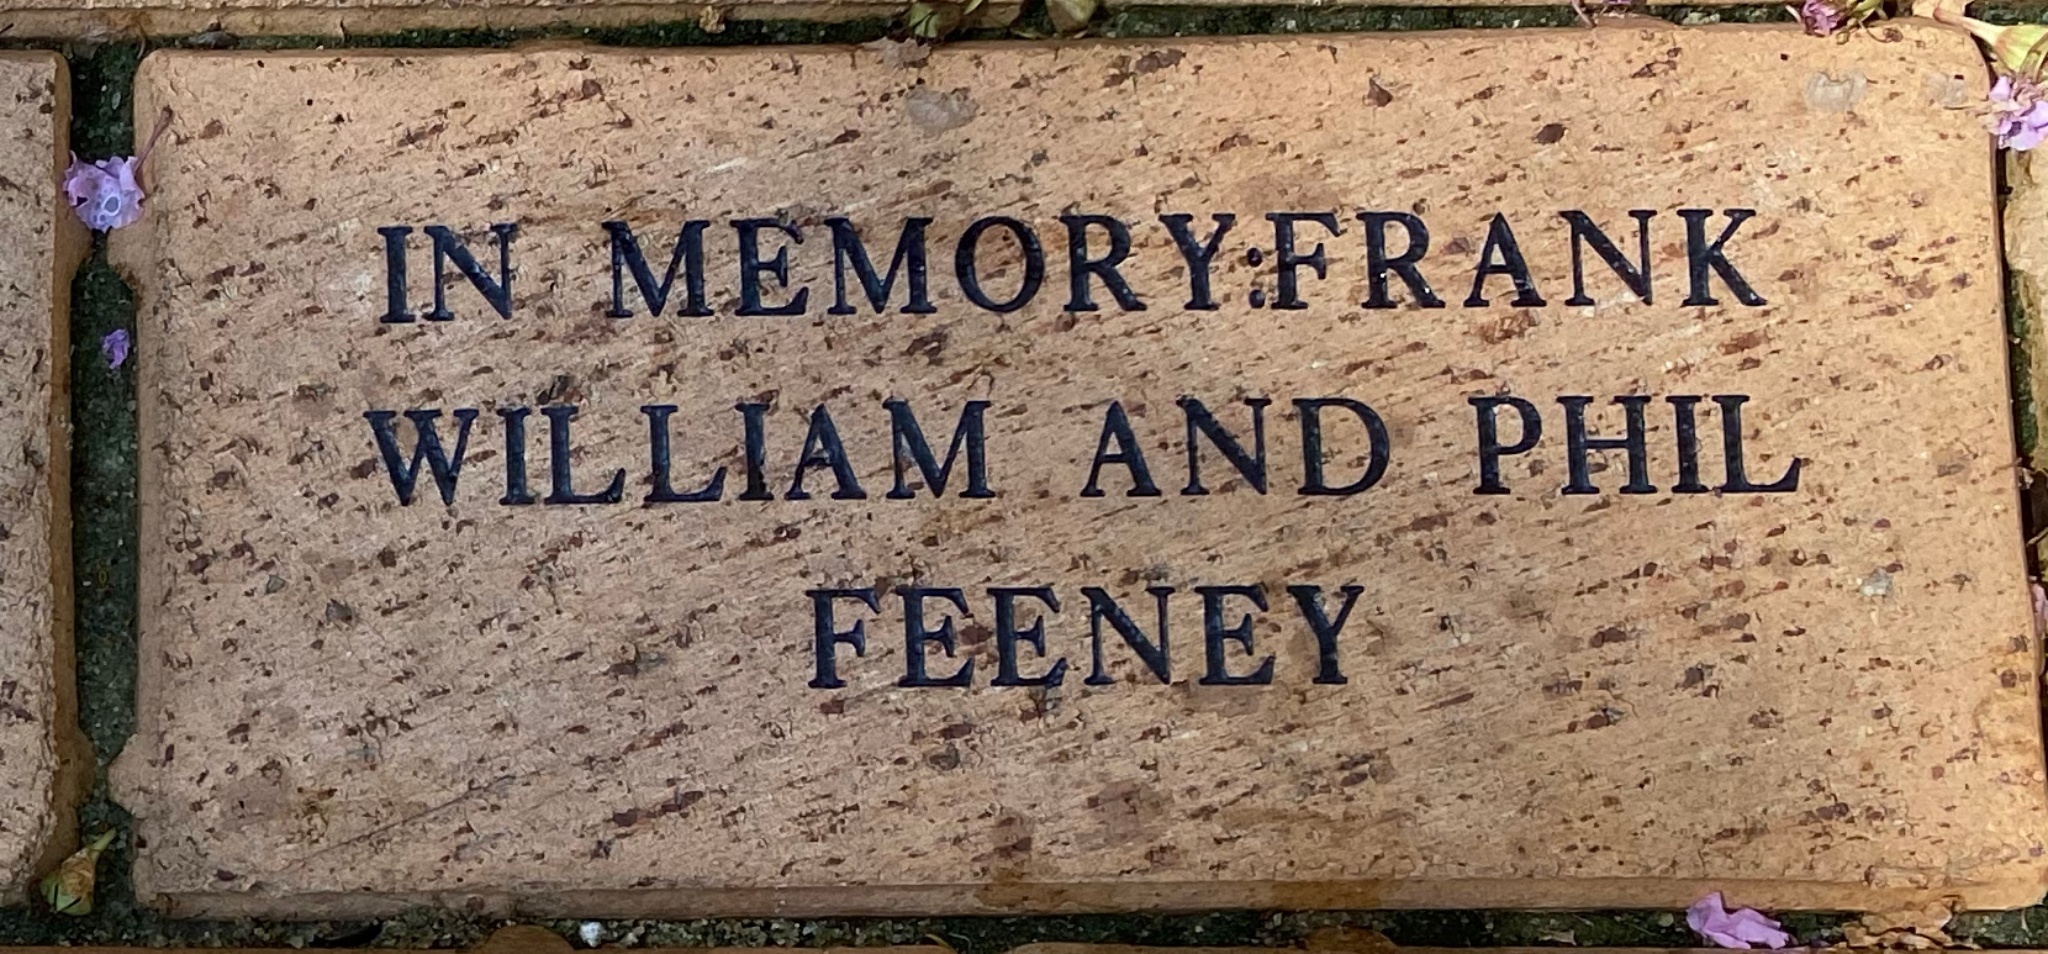 IN MEMORY FRANK, WILLIAM AND PHIL FEENEY